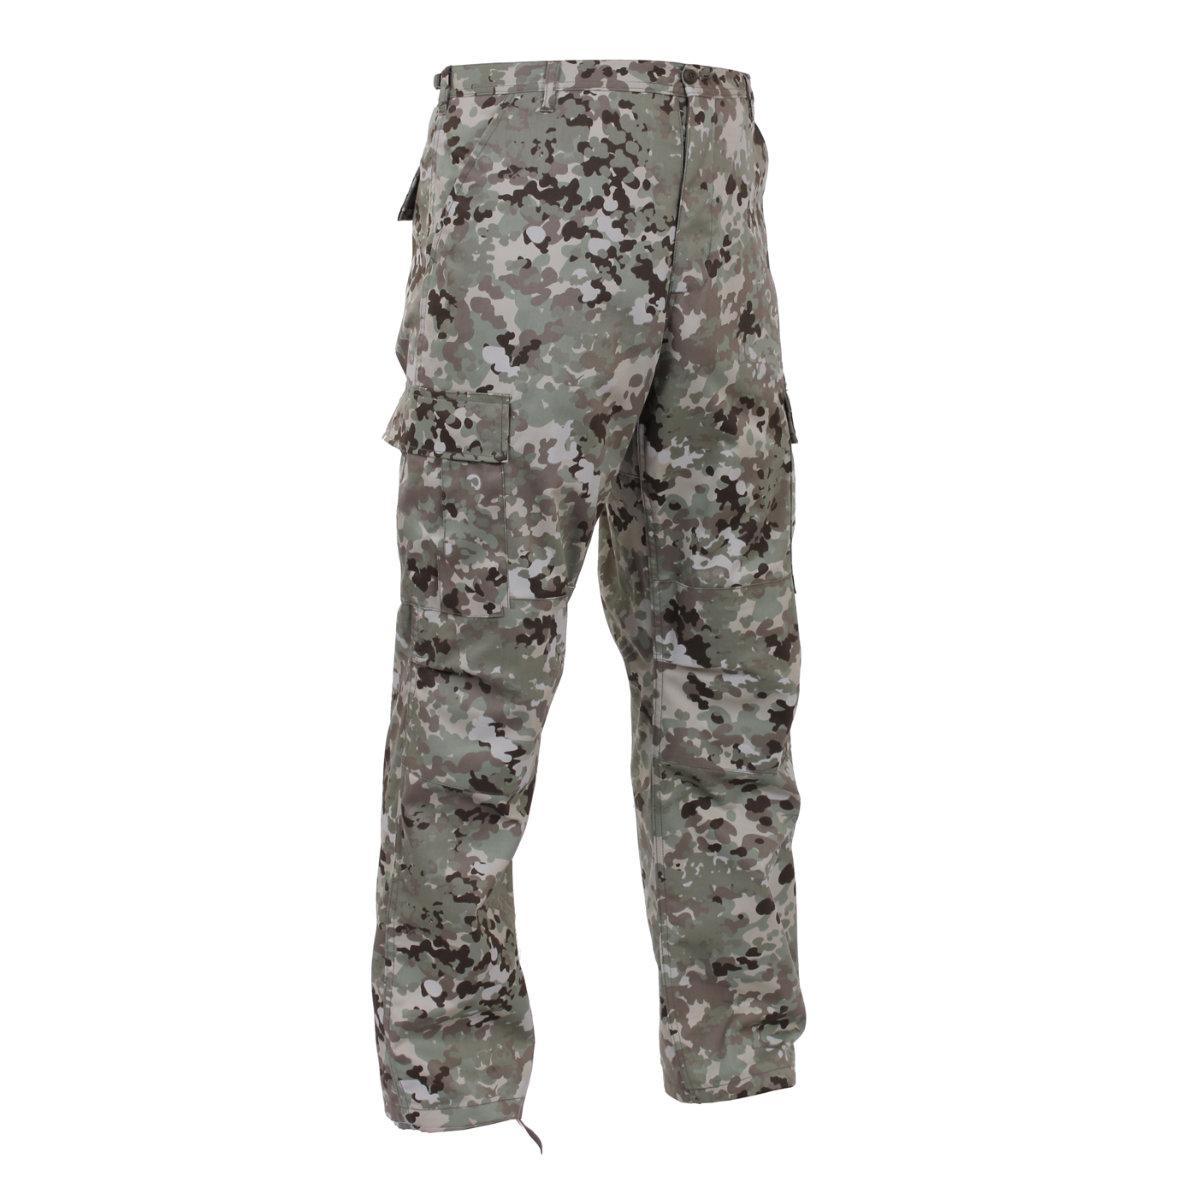 Total Terrain Camo BDU Pants, Military Fatigues by Rothco